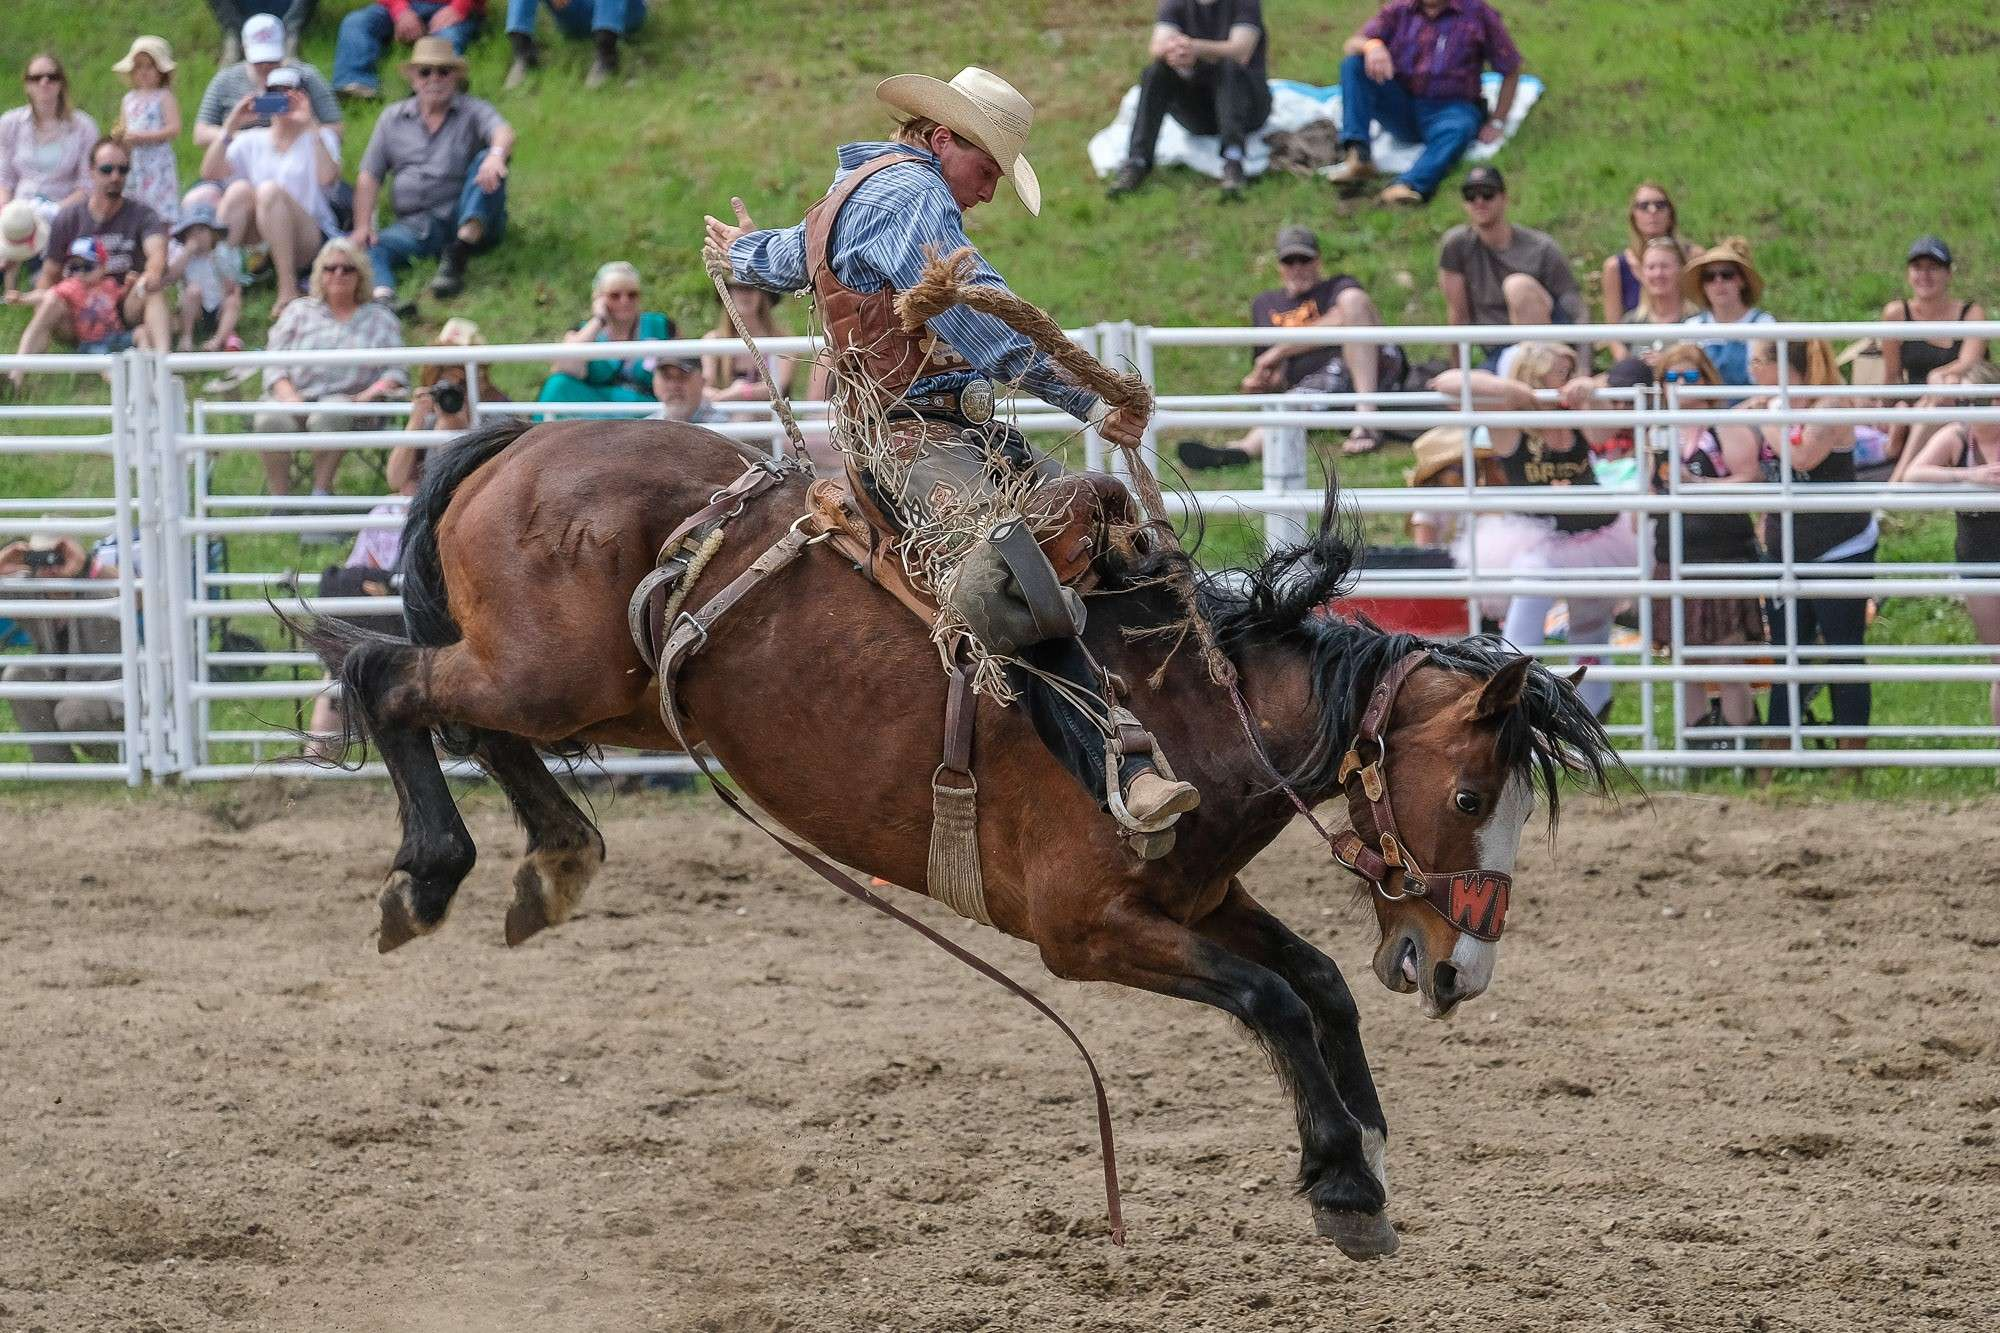 Action - Rodeo